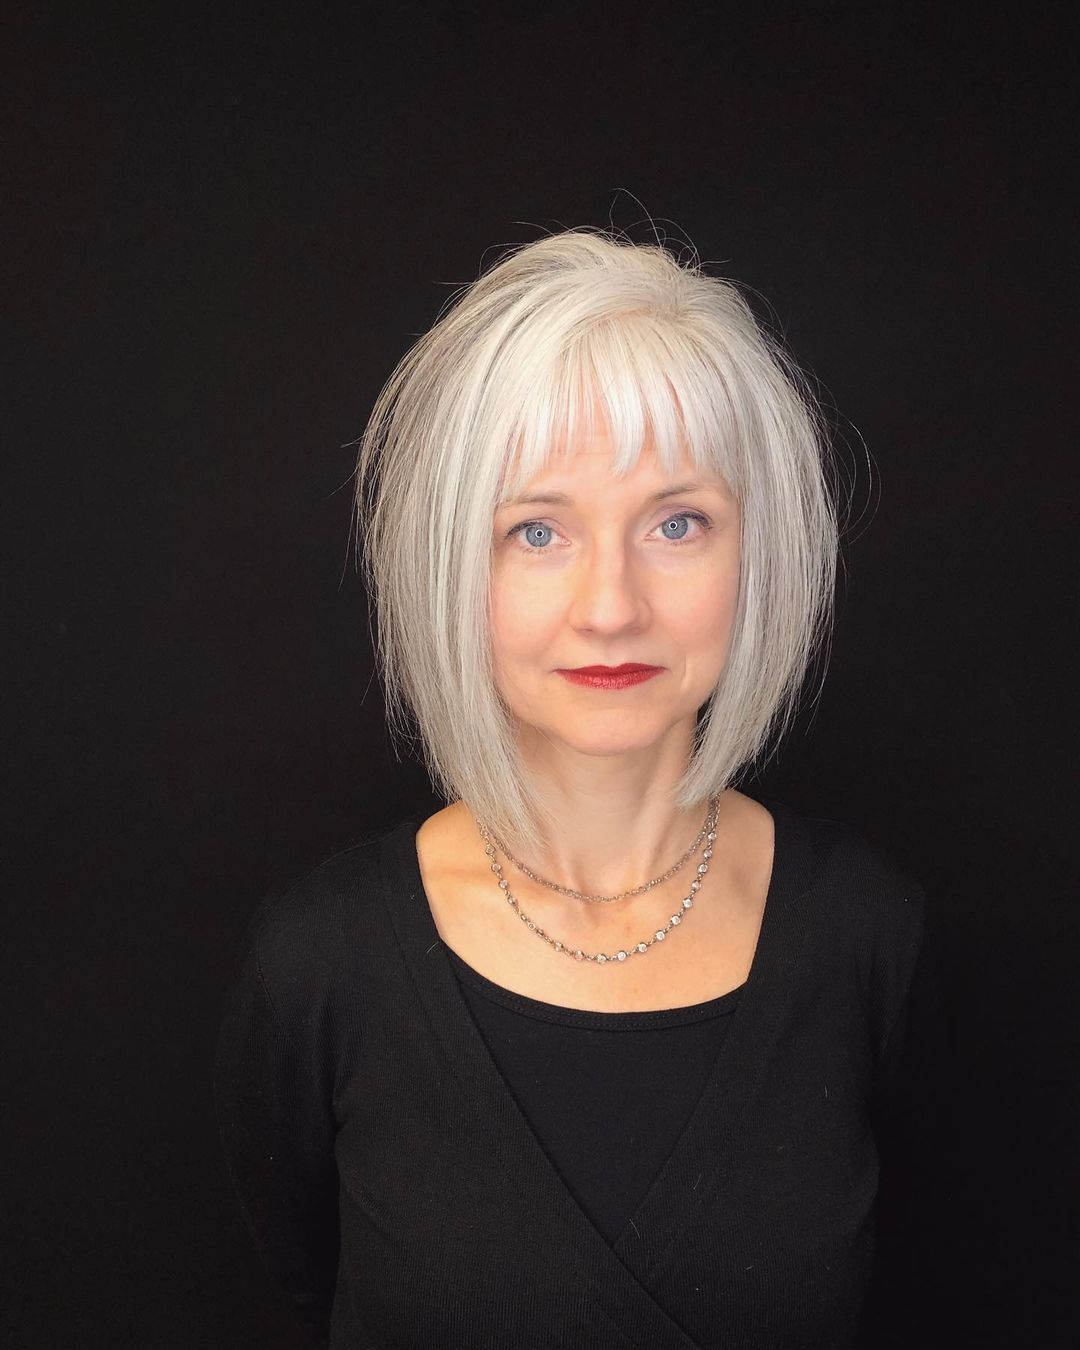 10 Fresh Looking Short Haircuts with Bangs for Older Women (Updated 2021) 734c8d6cf3df1d55dfb597704093ecc6